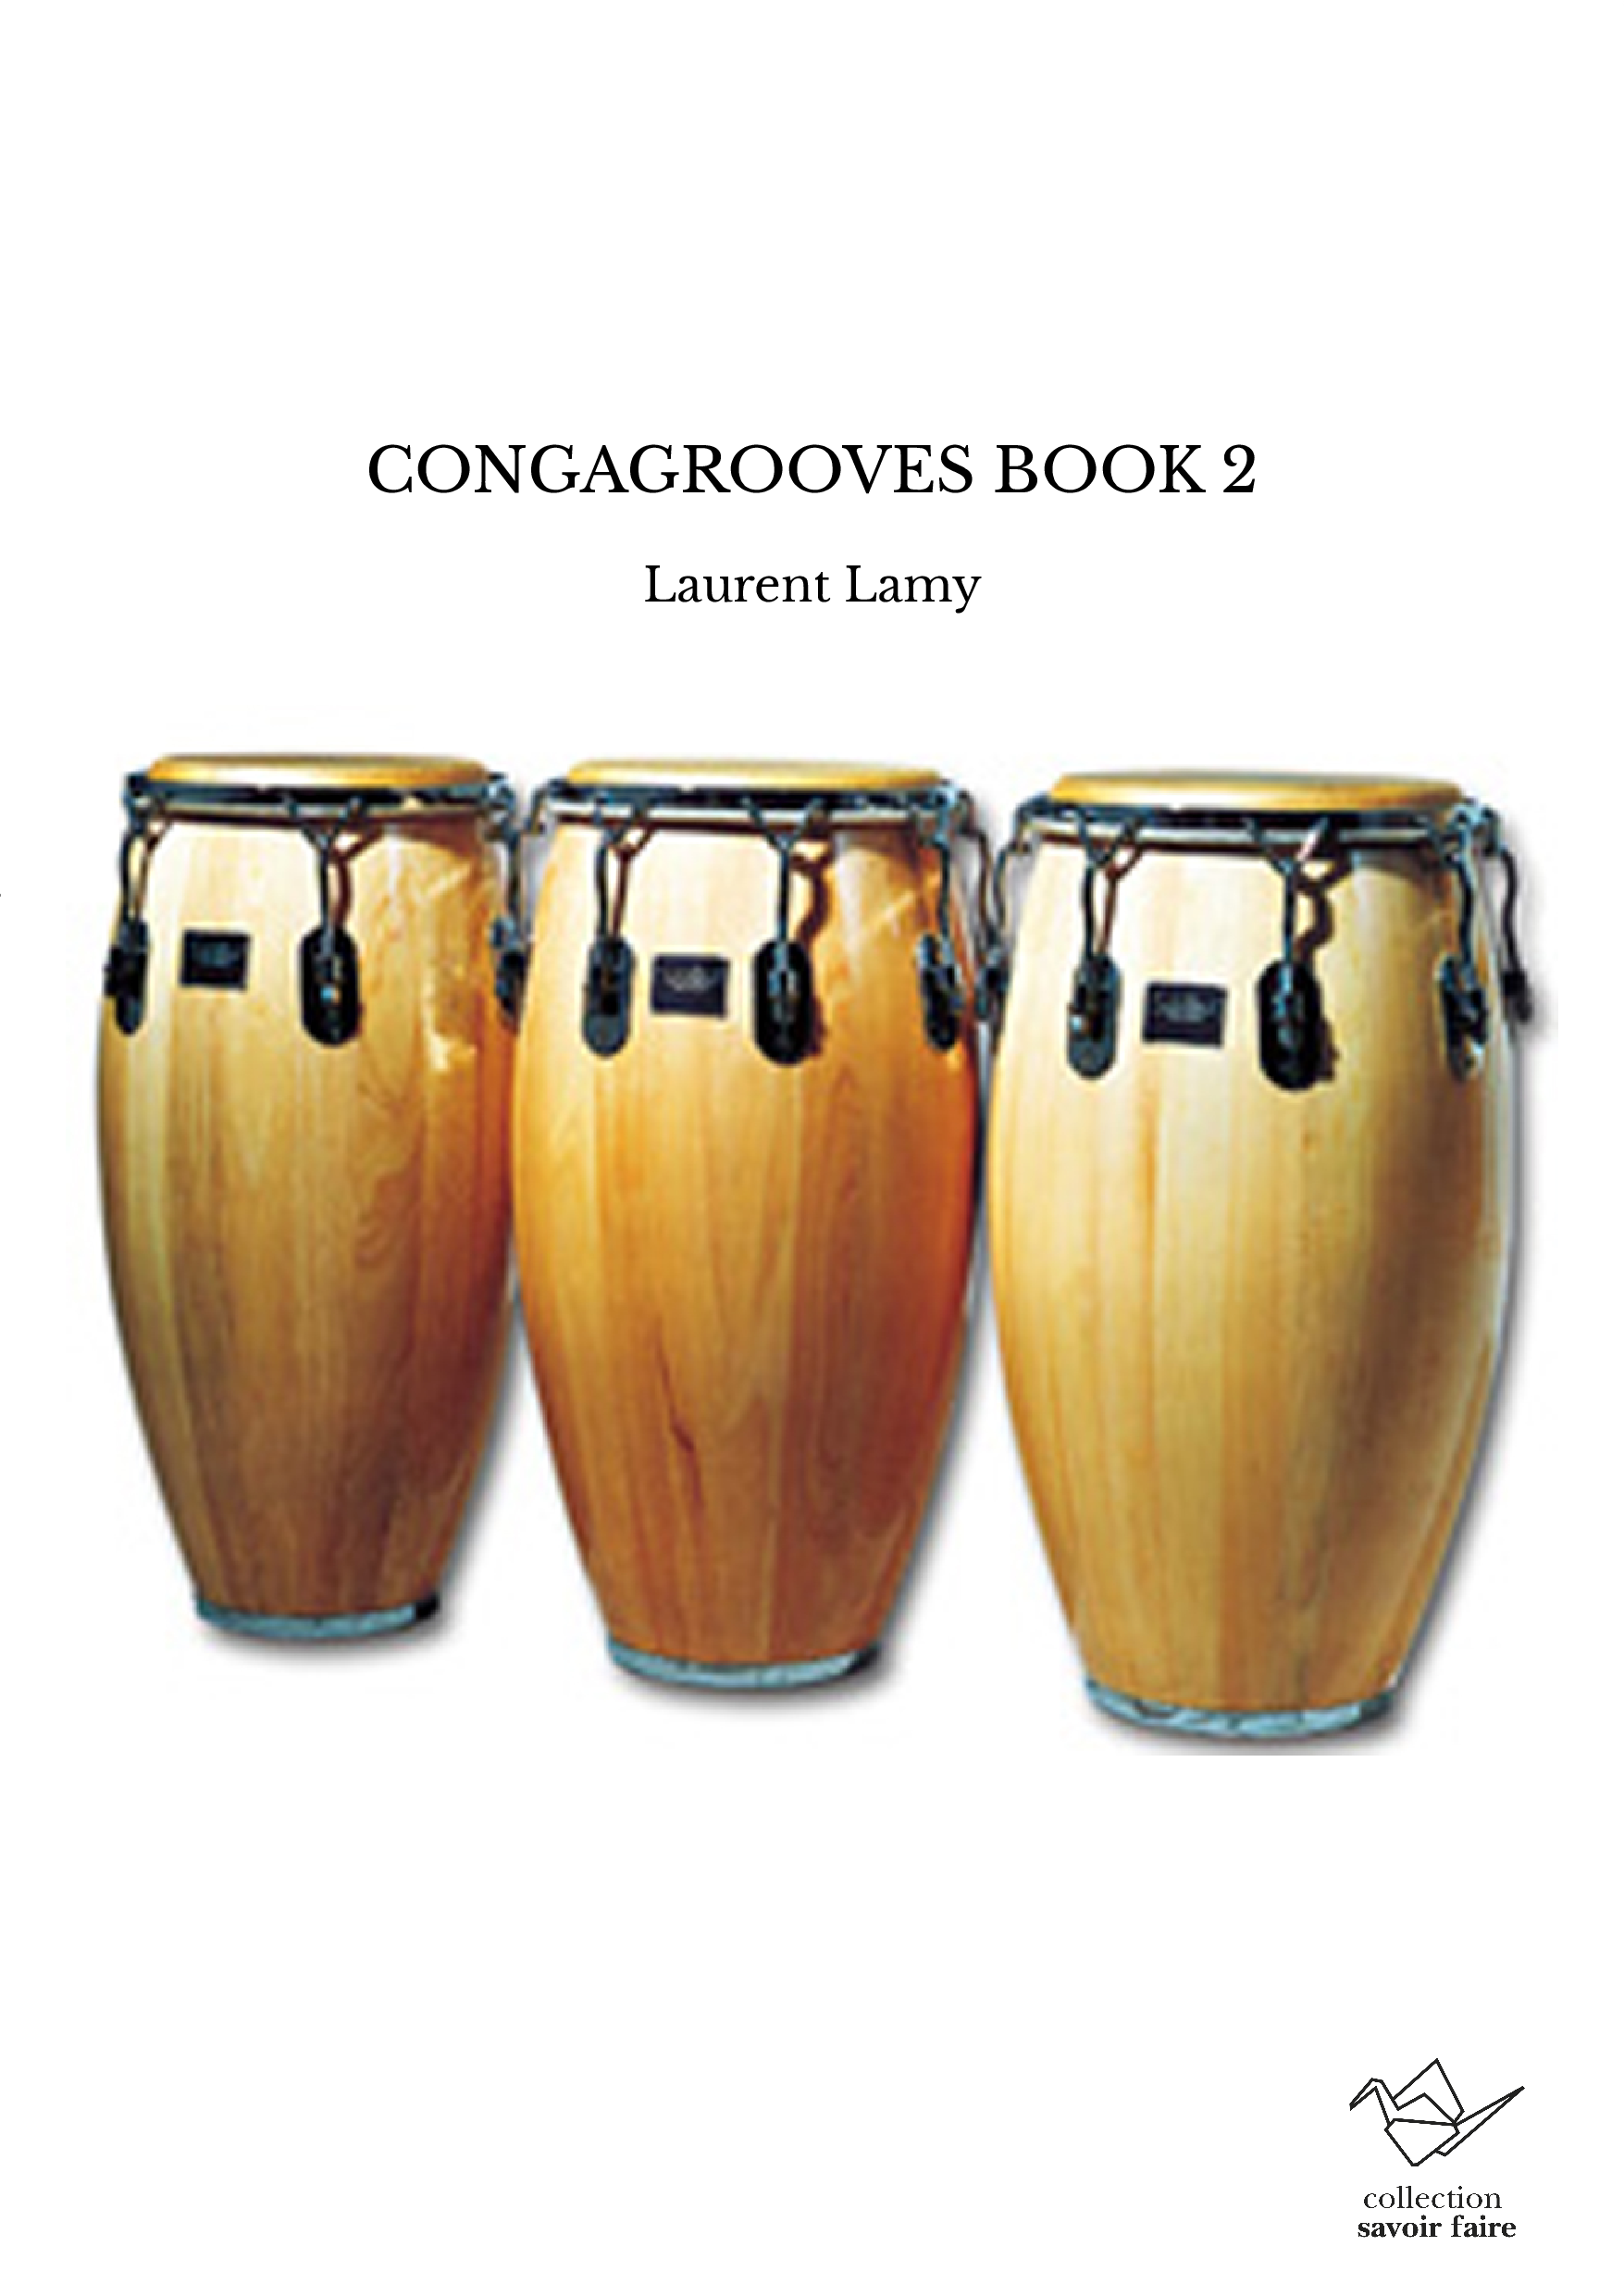 CONGAGROOVES BOOK 2